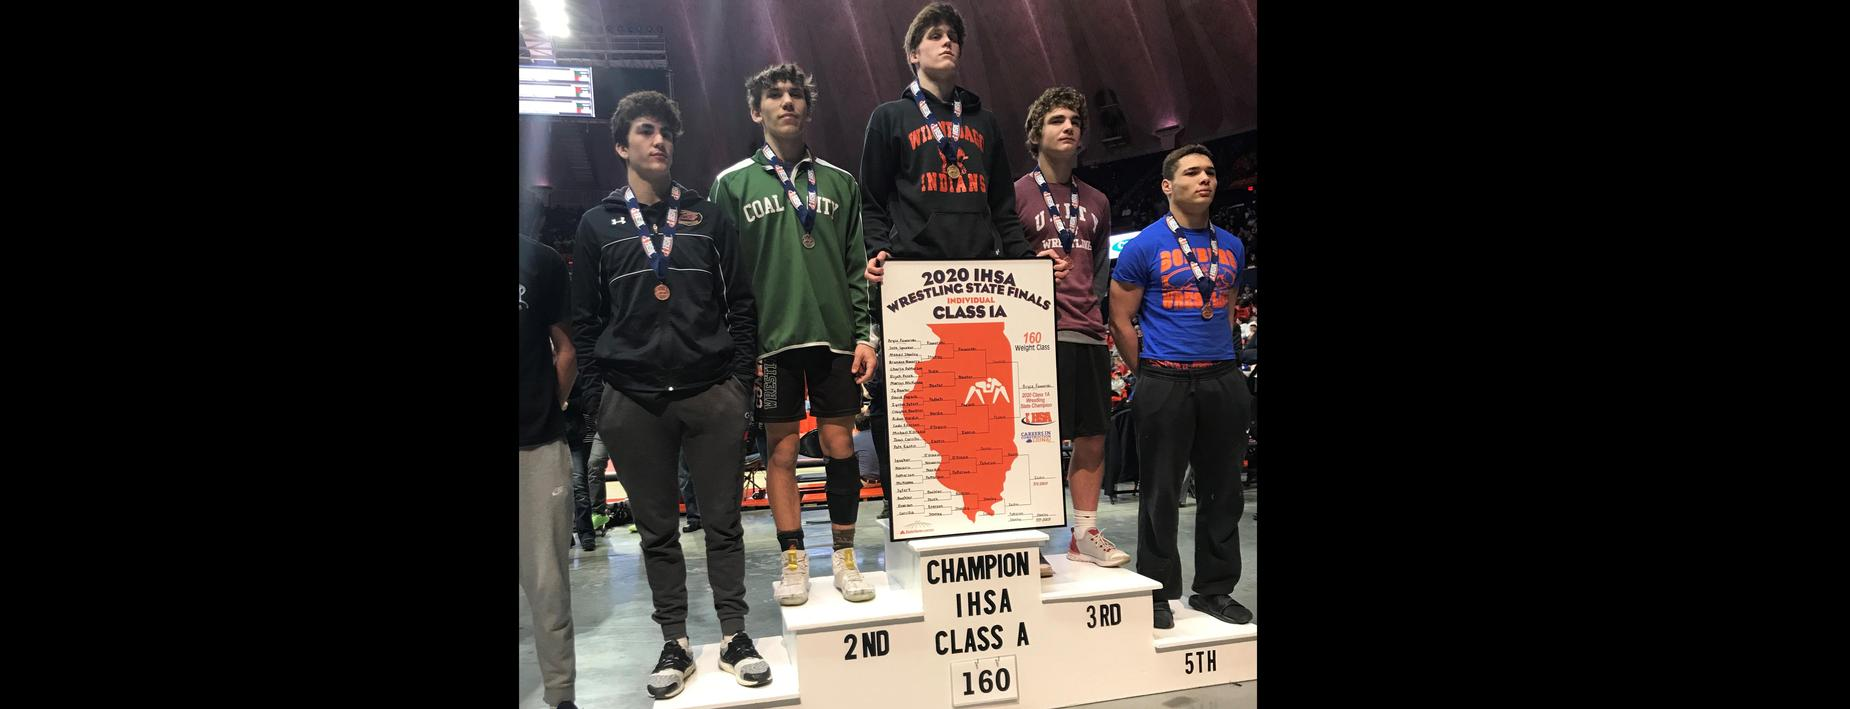 2nd place - individual wrestling state